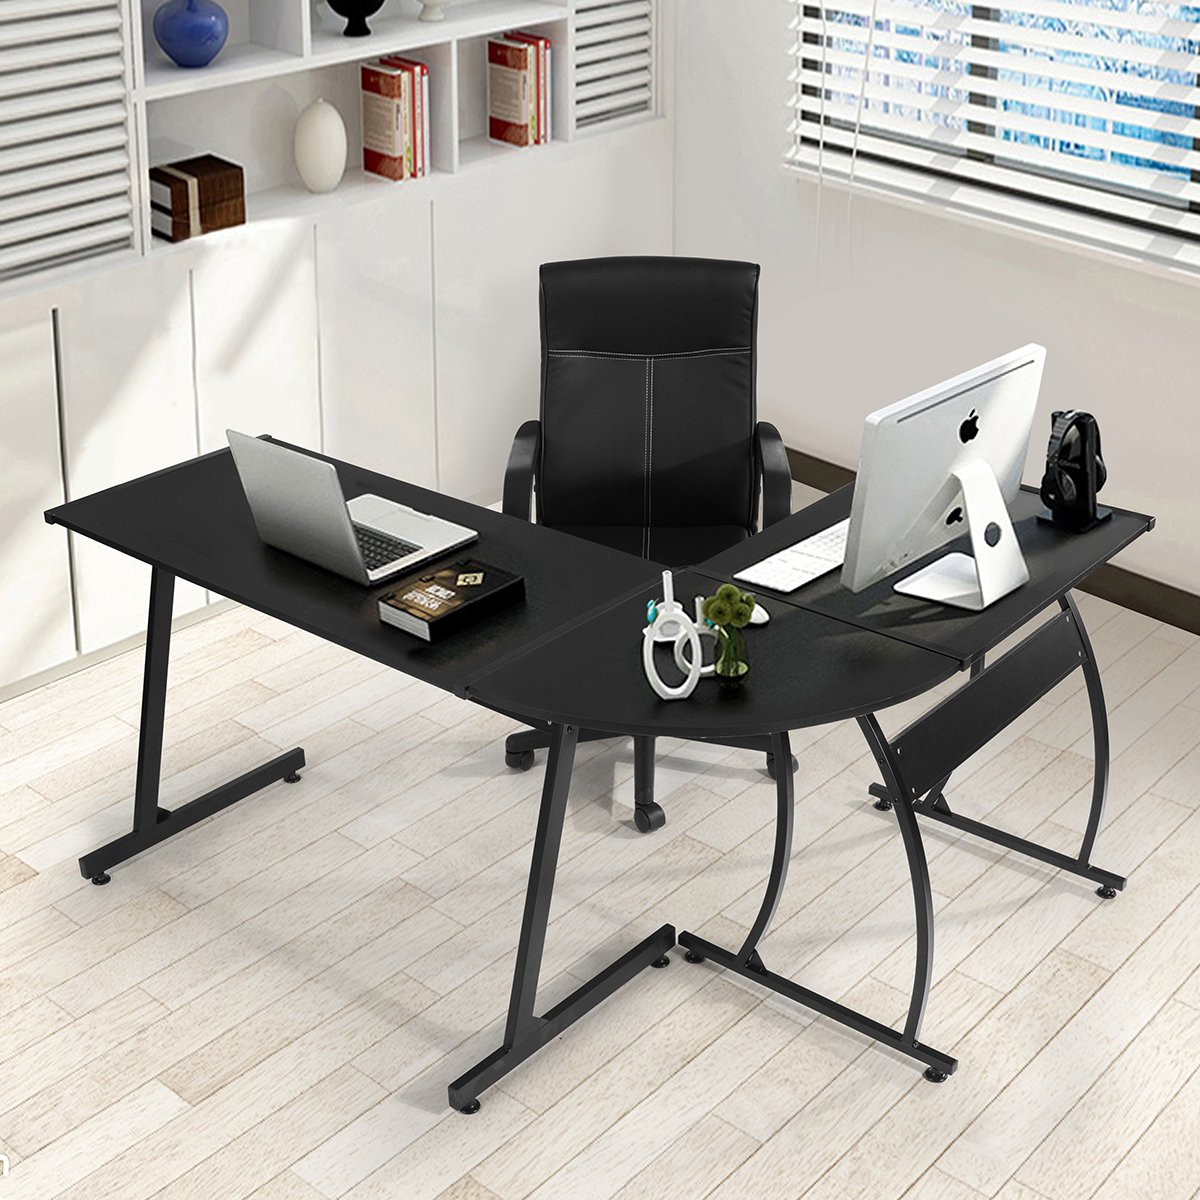 office corner desks. Office Corner Desk Coavas L-Shaped Wood Large PC Gaming Table Computer Workstation For Home And Use, Black Desks P